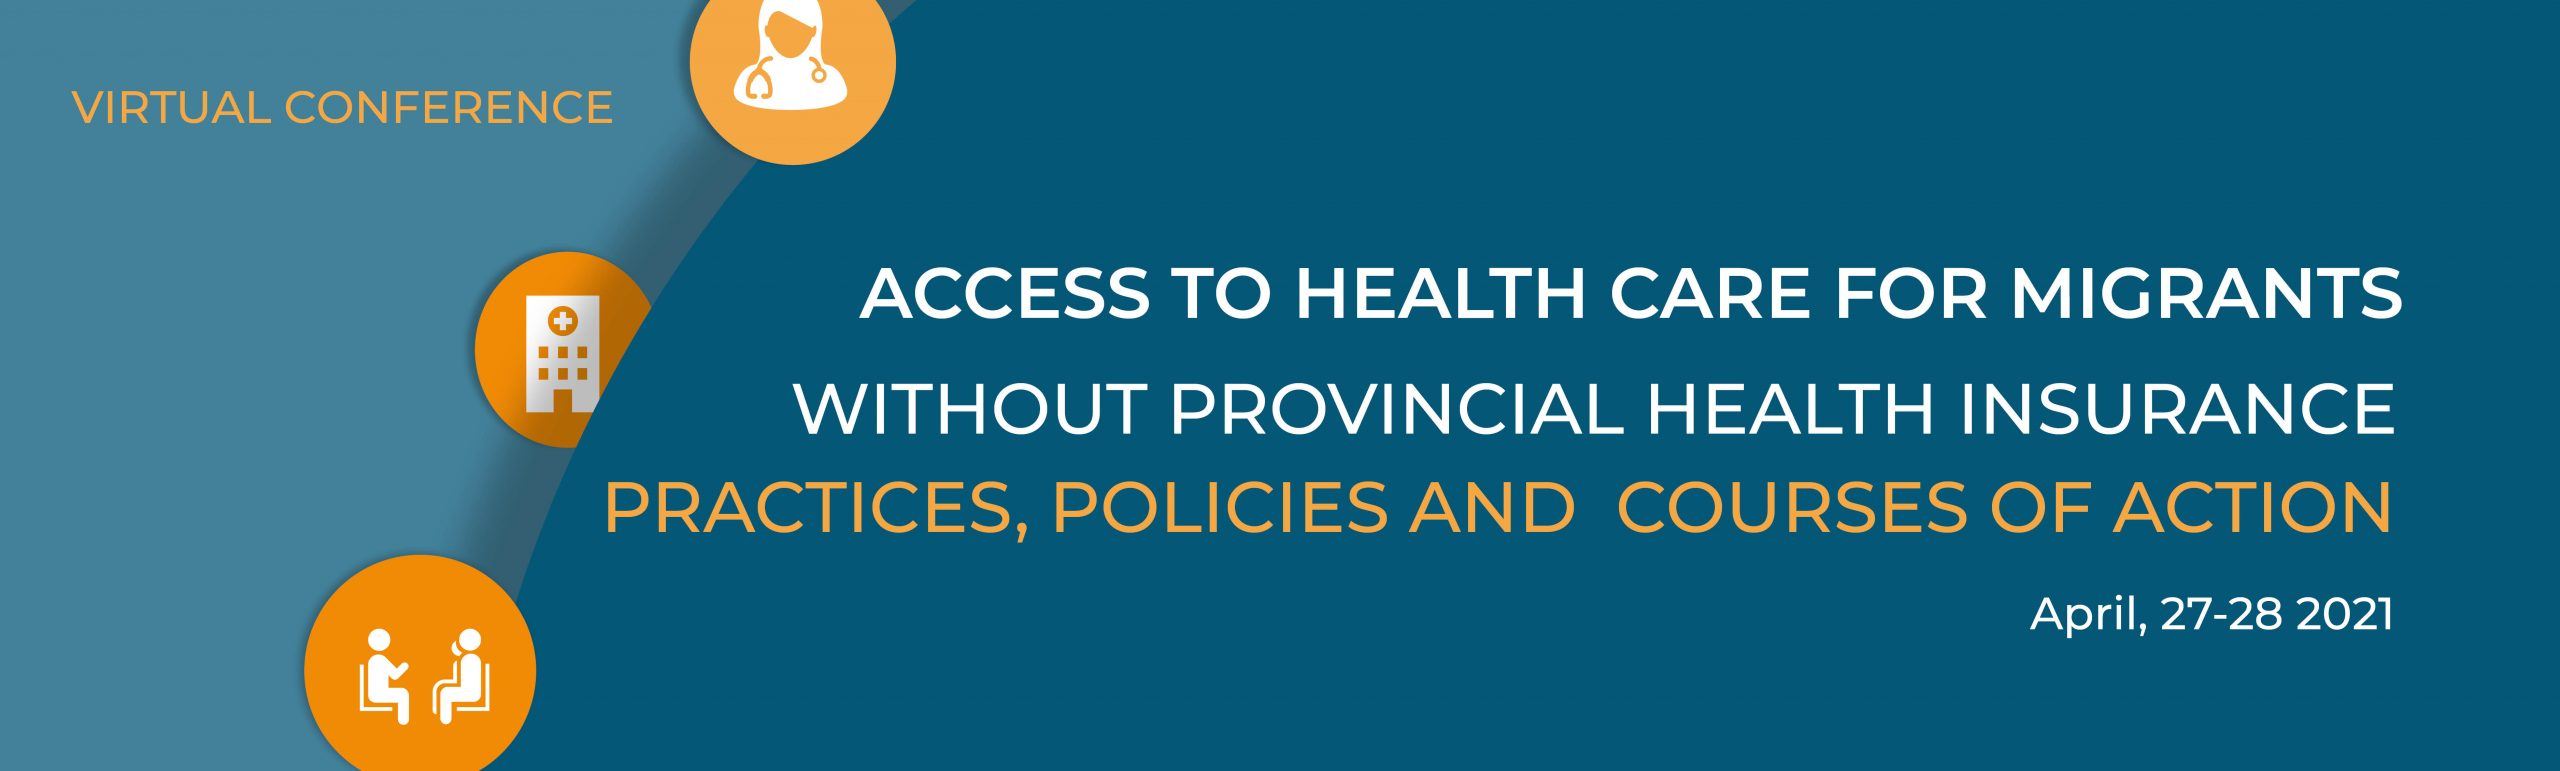 Access to health care for migrants withoutprovincial health insurance. Practices, policies and courses of action